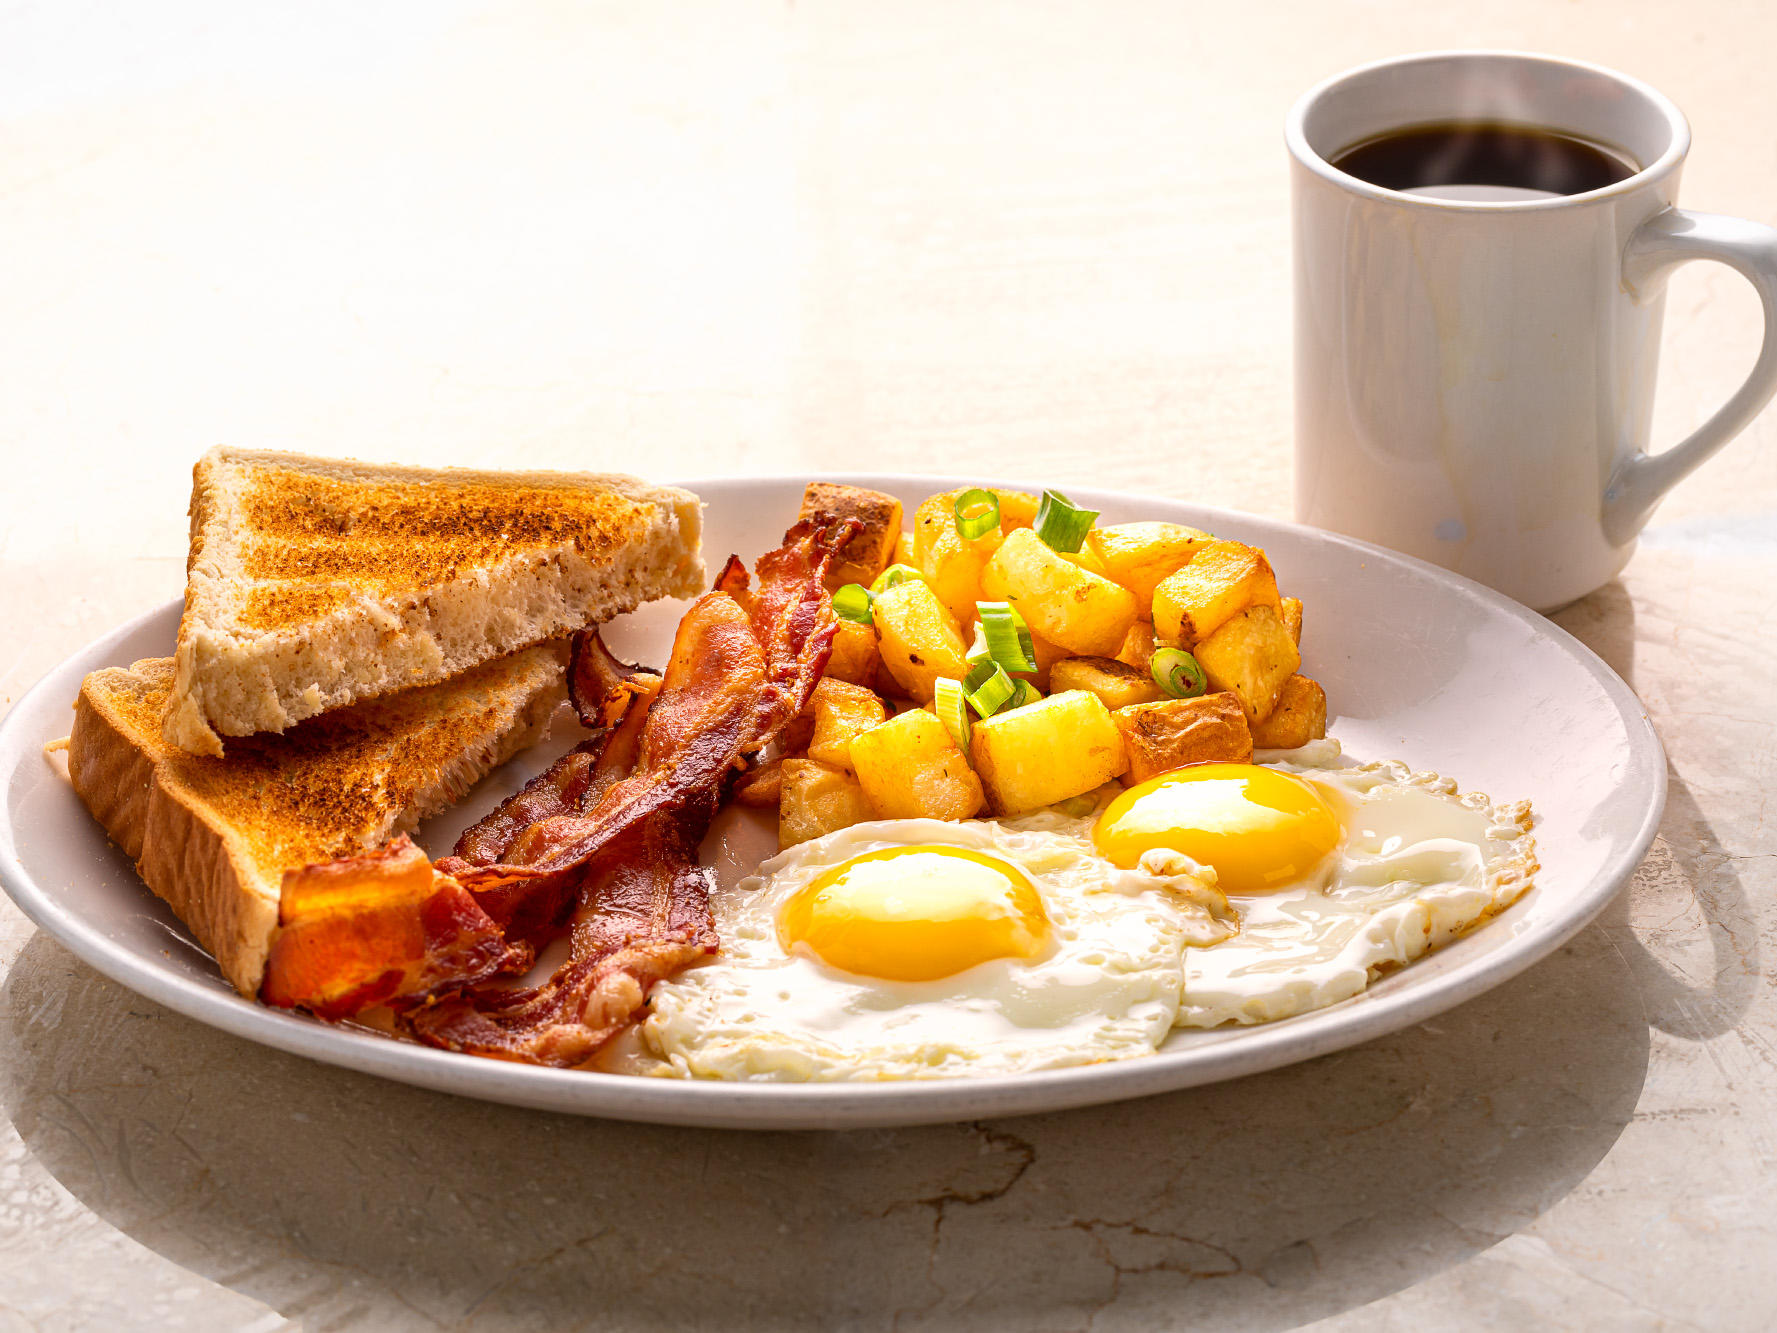 fried eggs, potatoes, bacon and toast with coffee